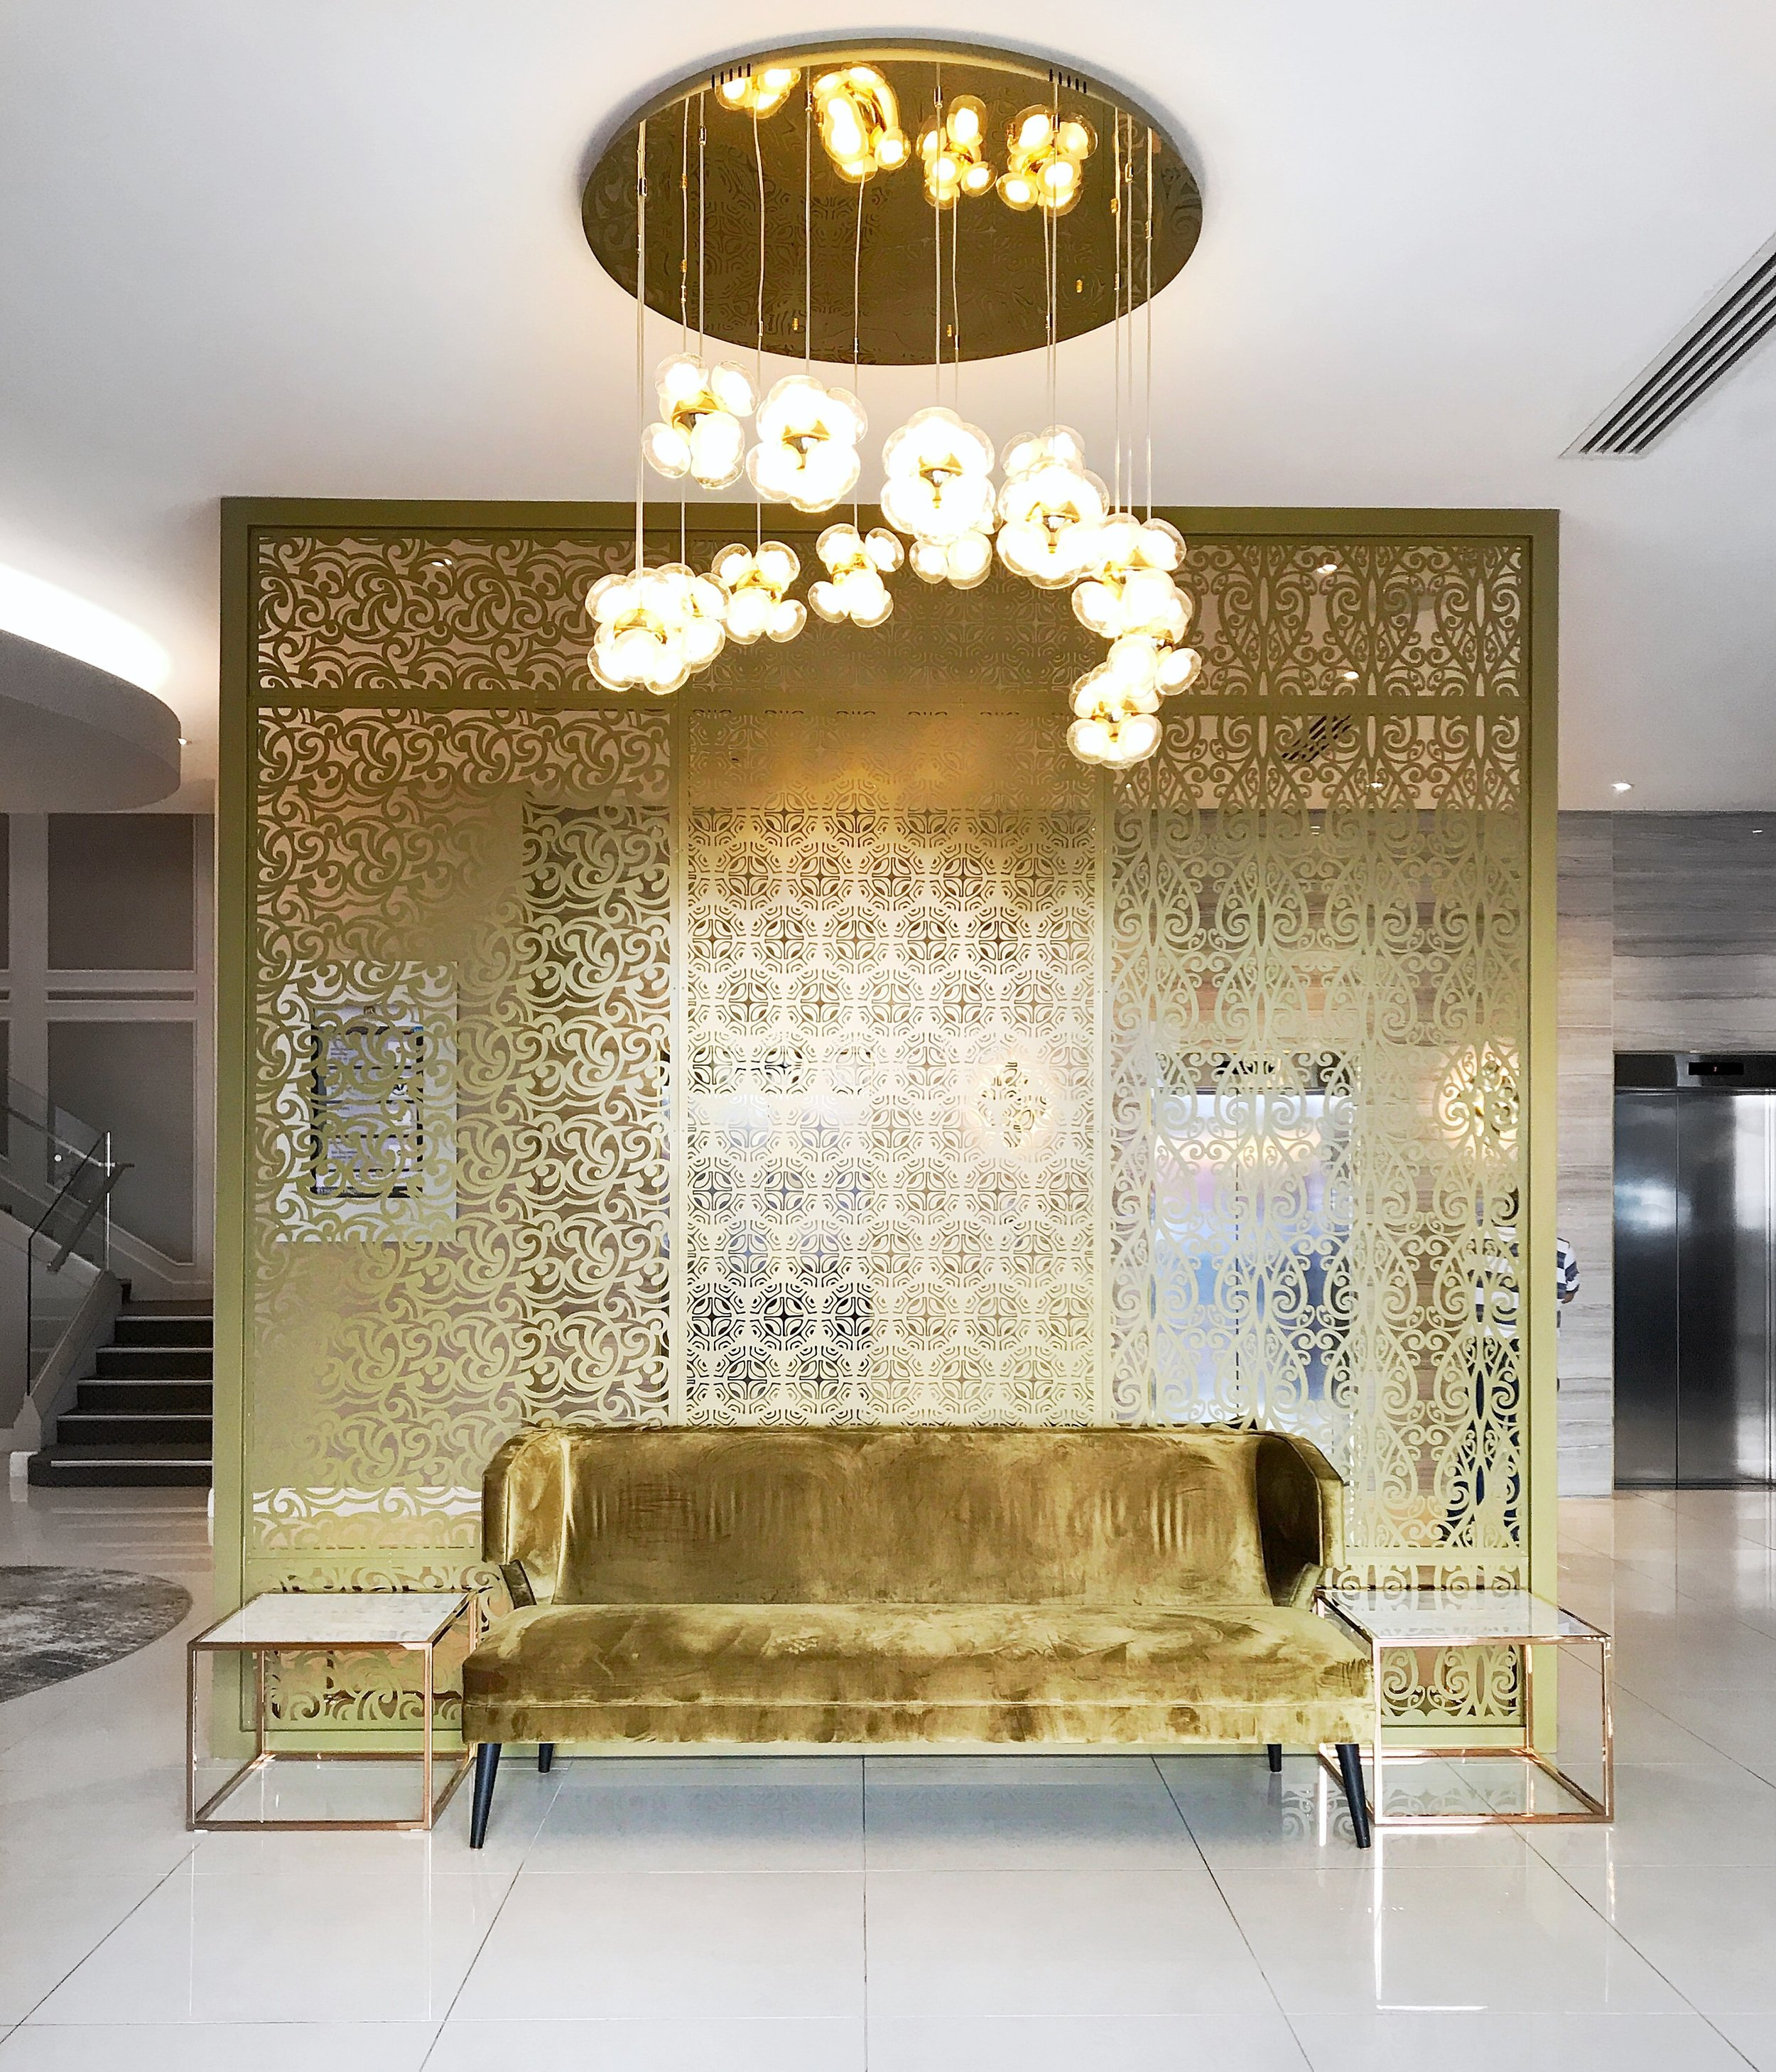 The foyer of the Grand Mecure Hotel